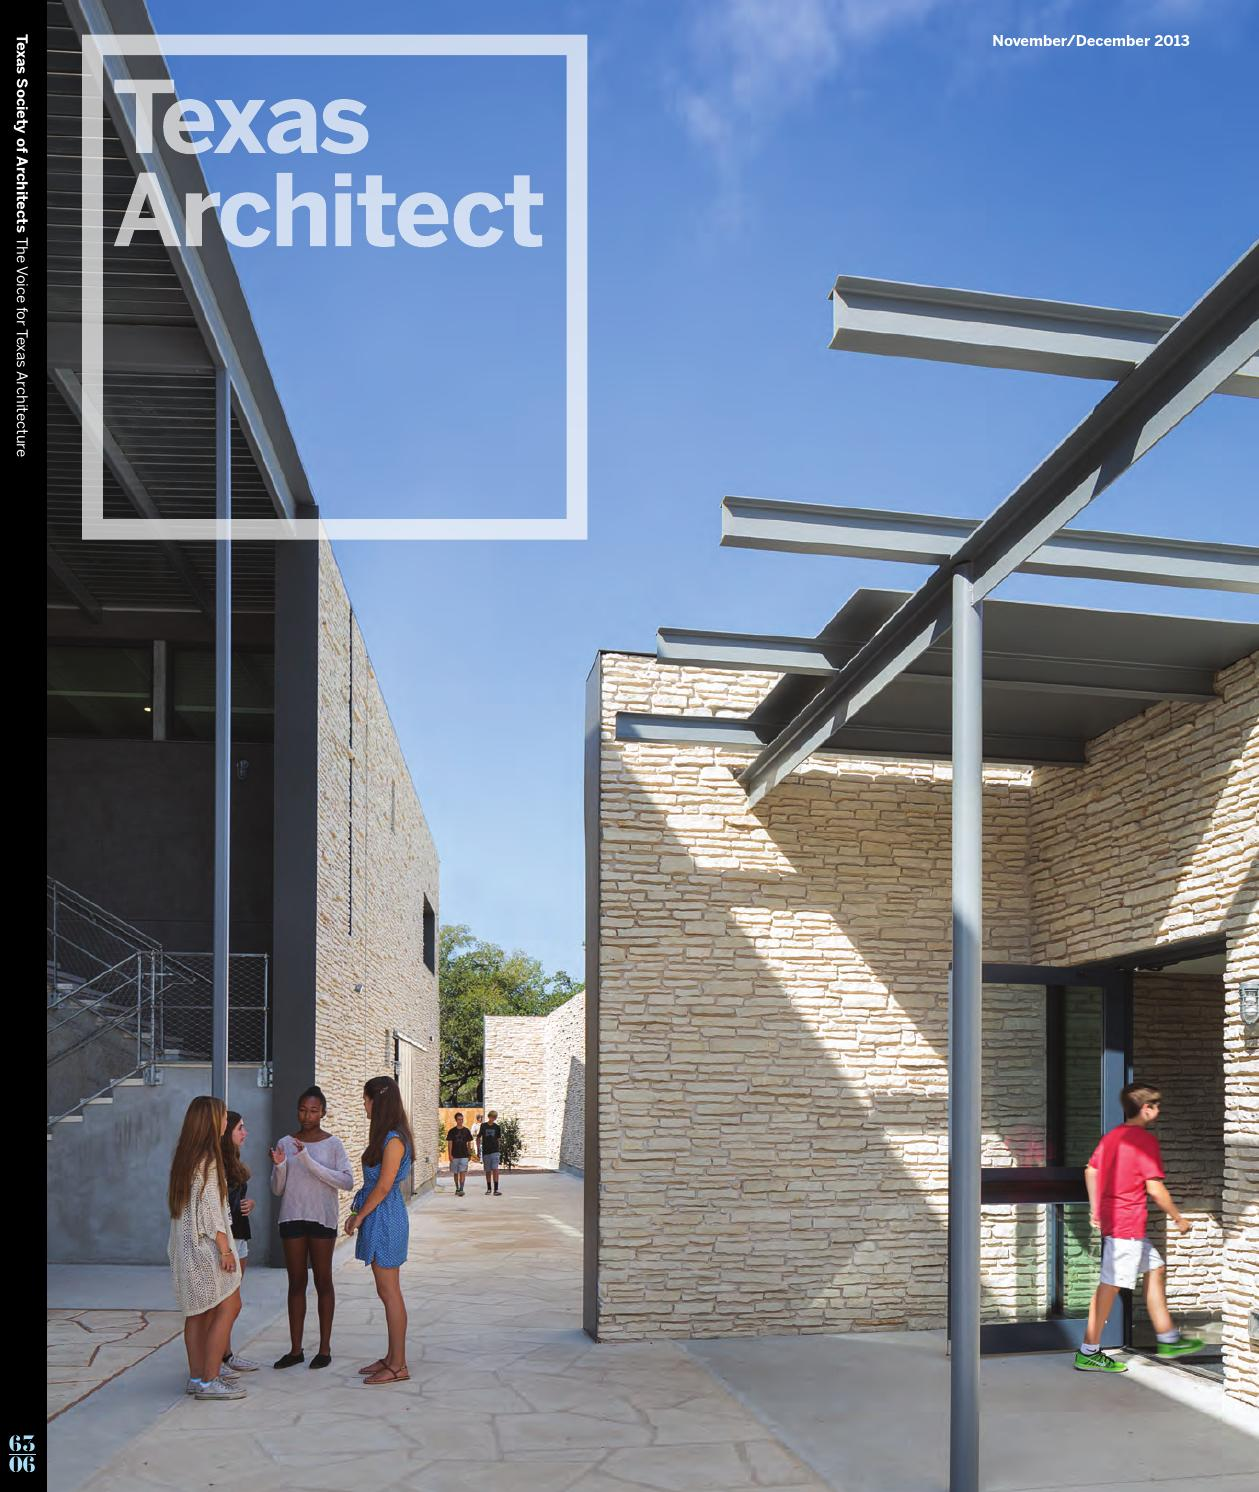 Texas Architect Novemberdecember 2013 Campus Architecture